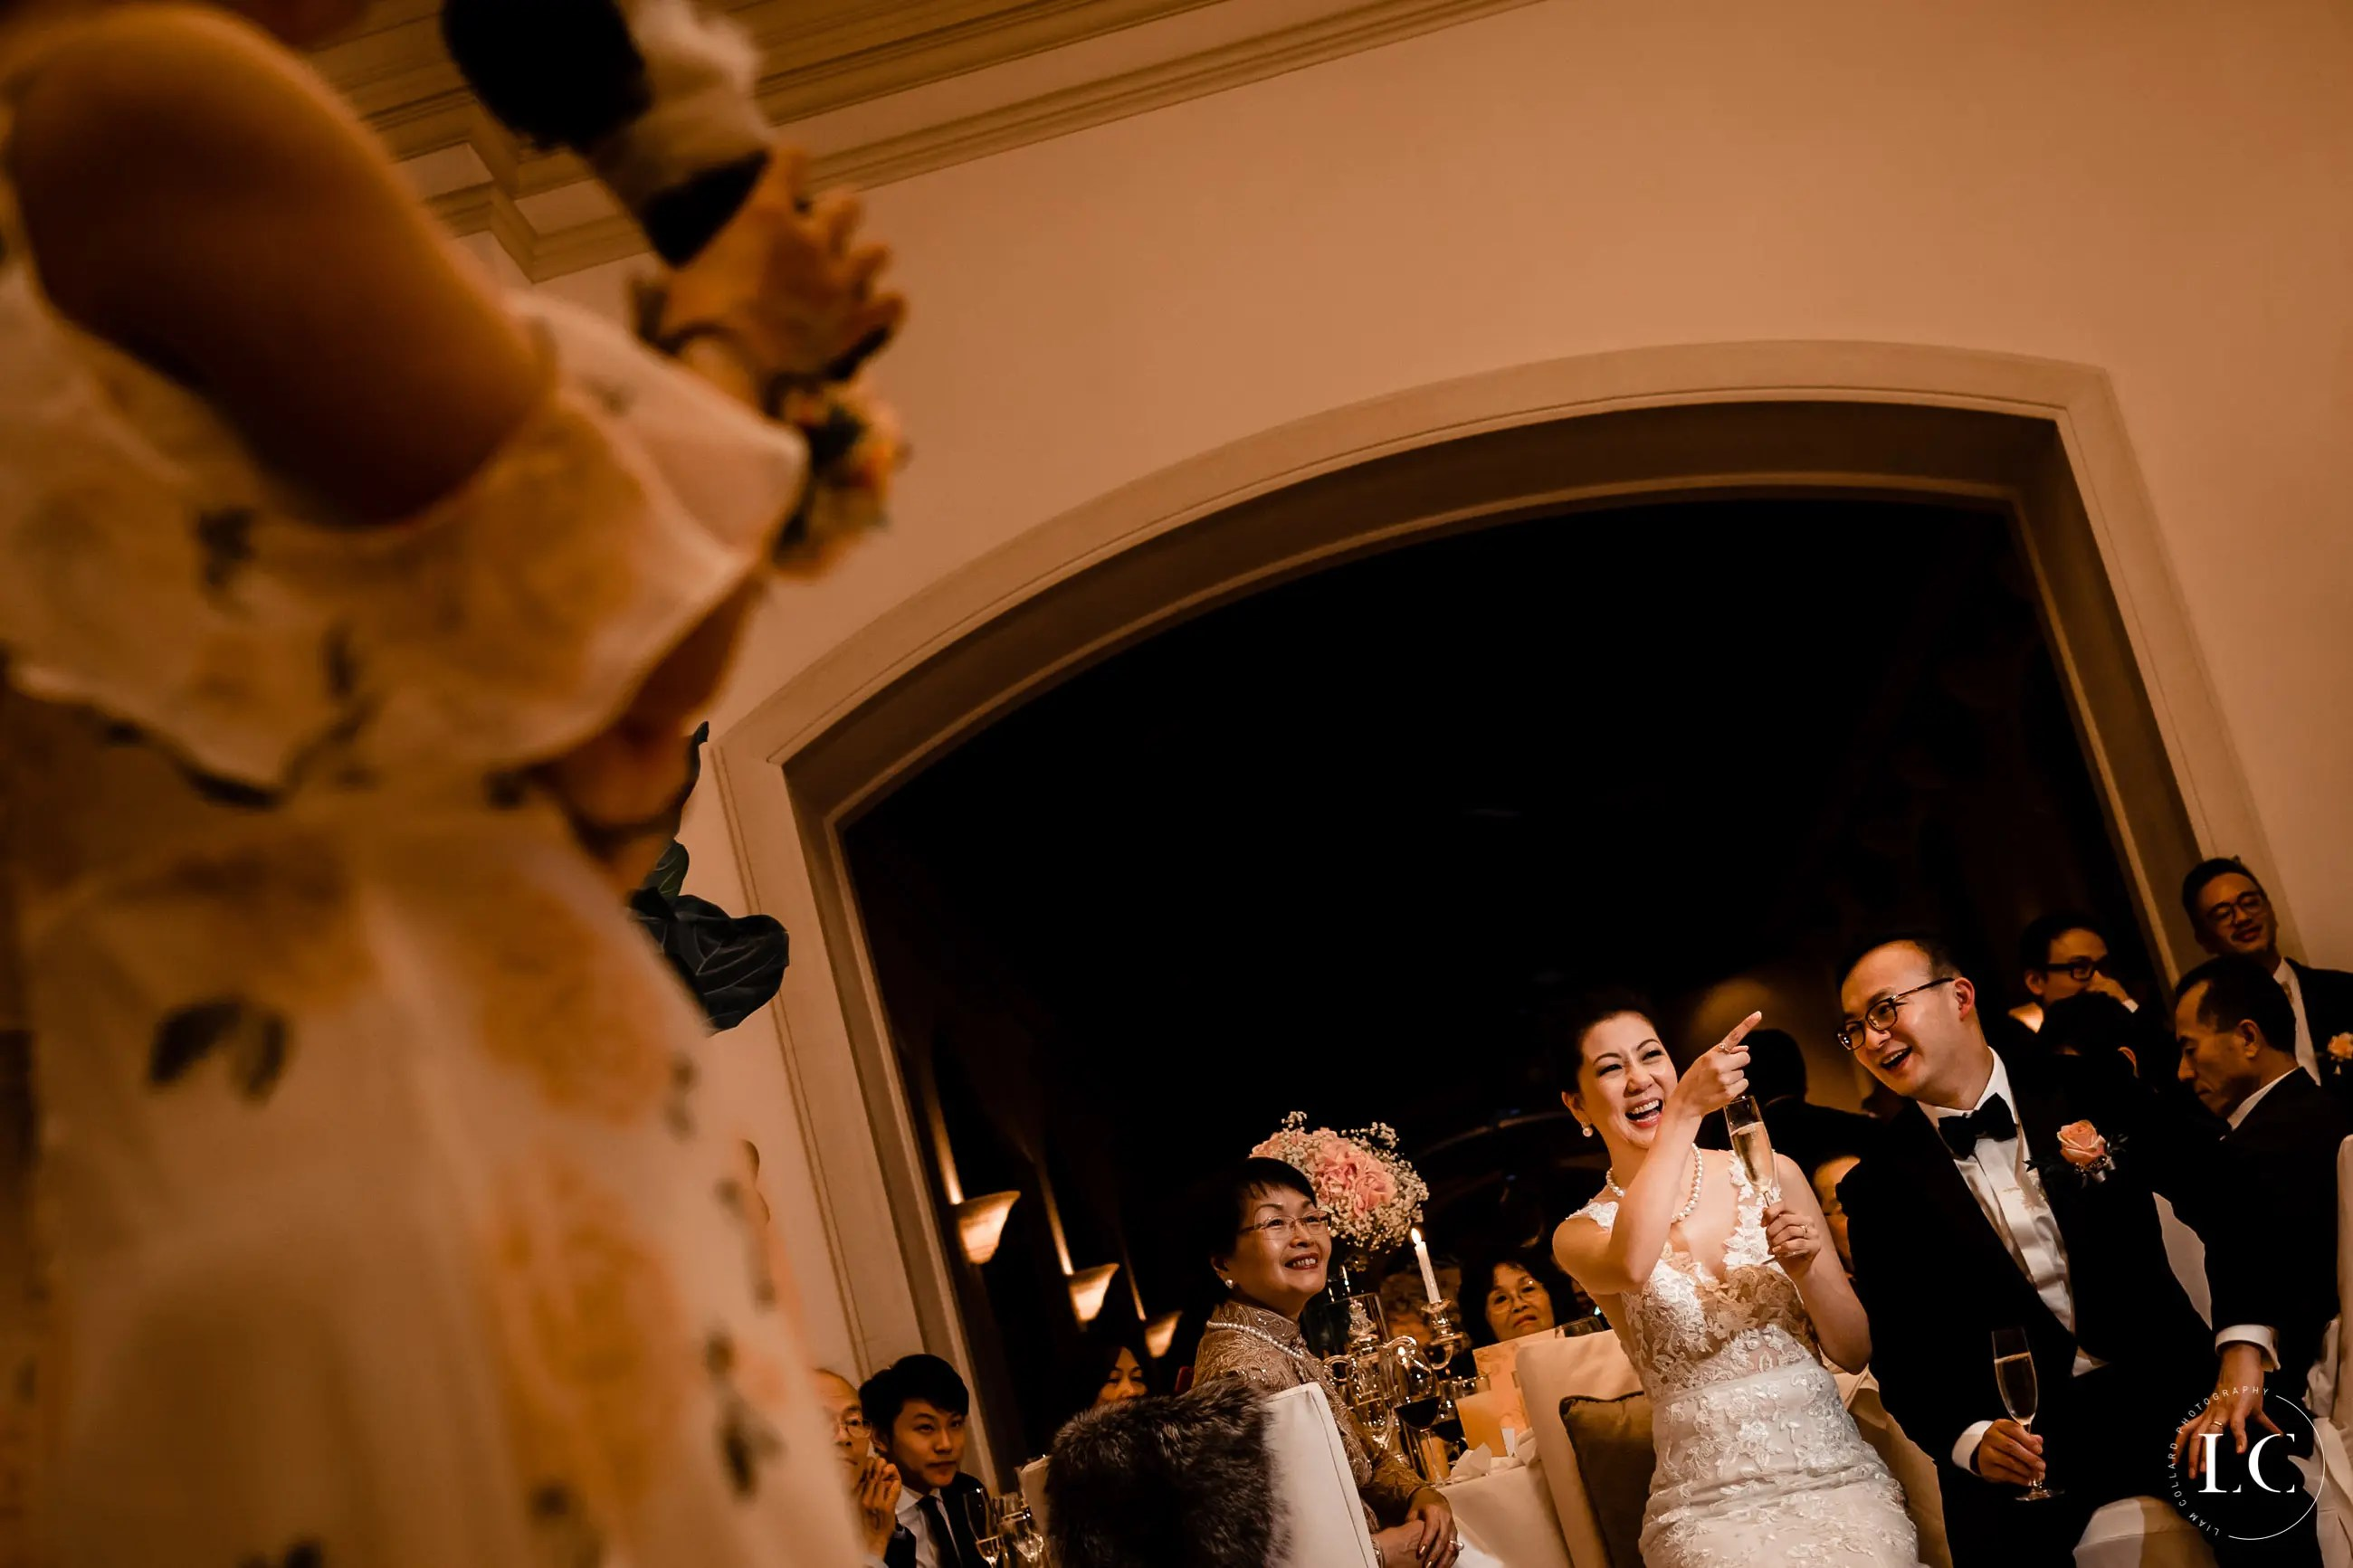 Speeches at Hong Kong wedding